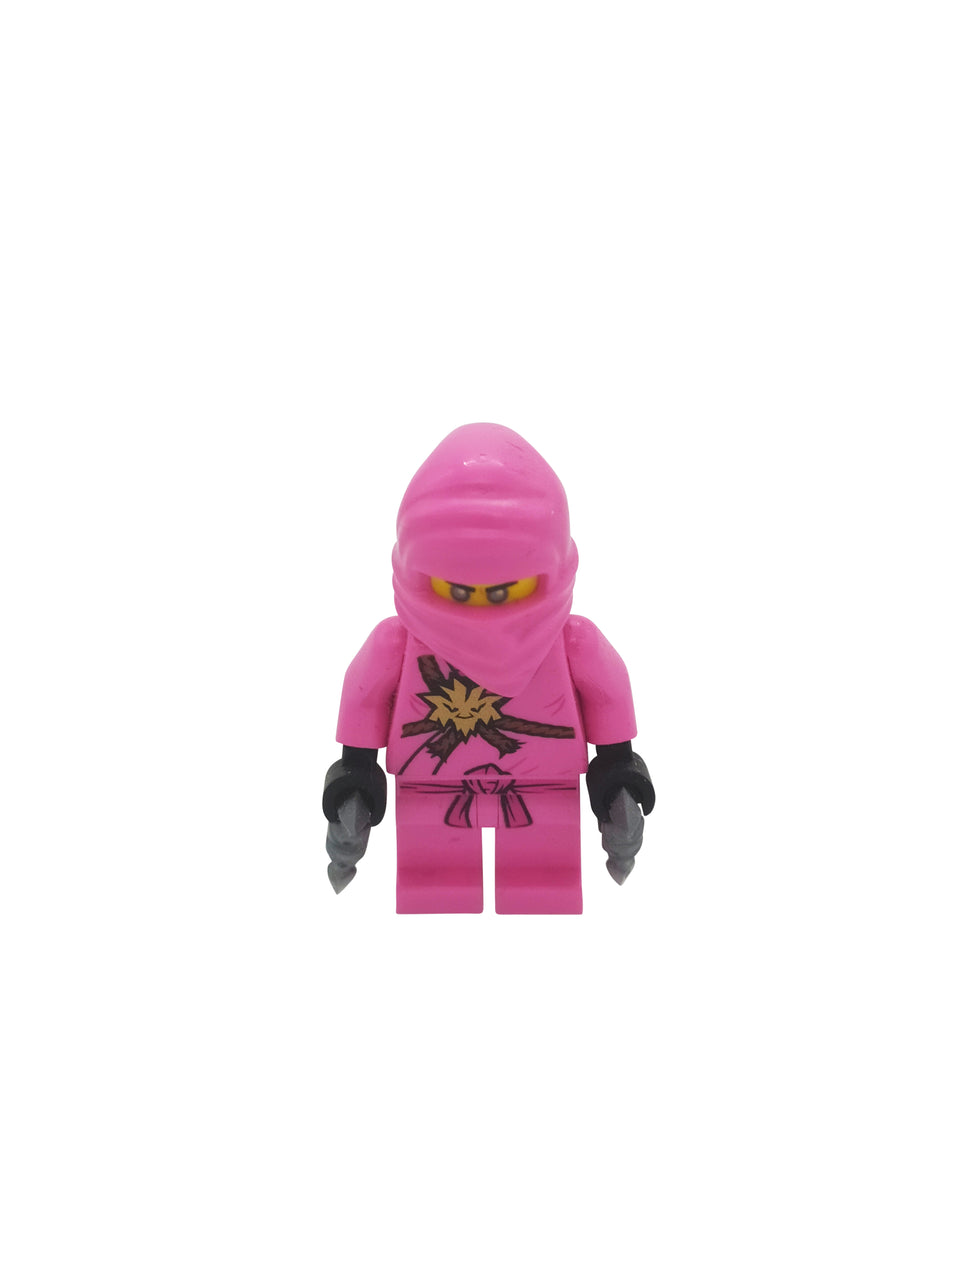 zane In a pink Lego Ninga suit